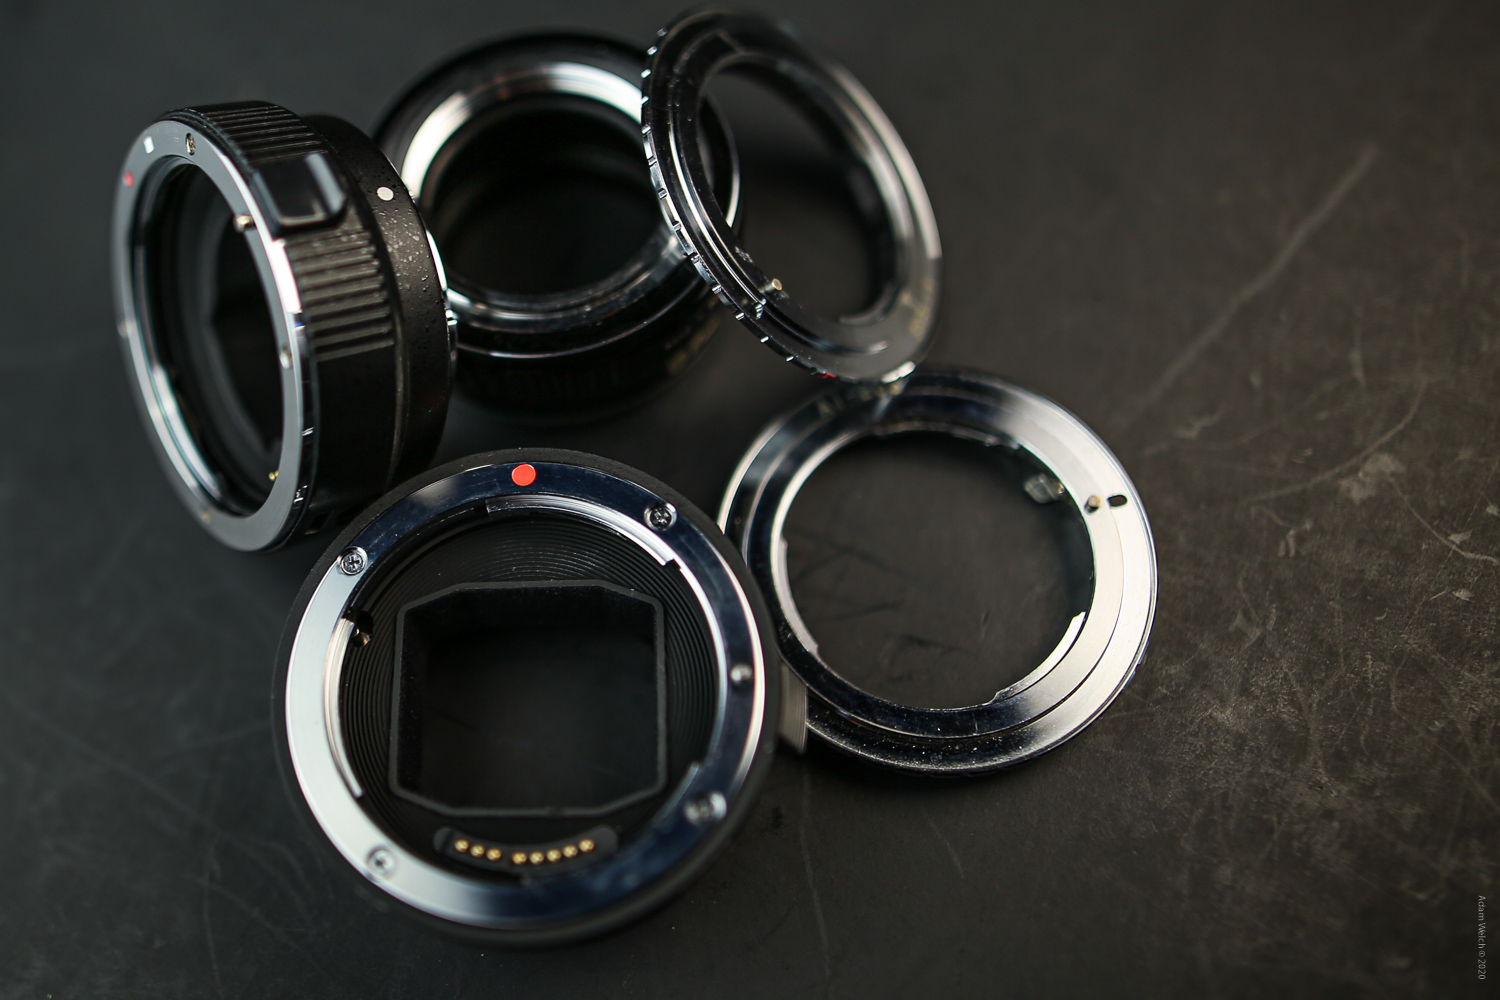 Adapters for using old lenses with new digital cameras